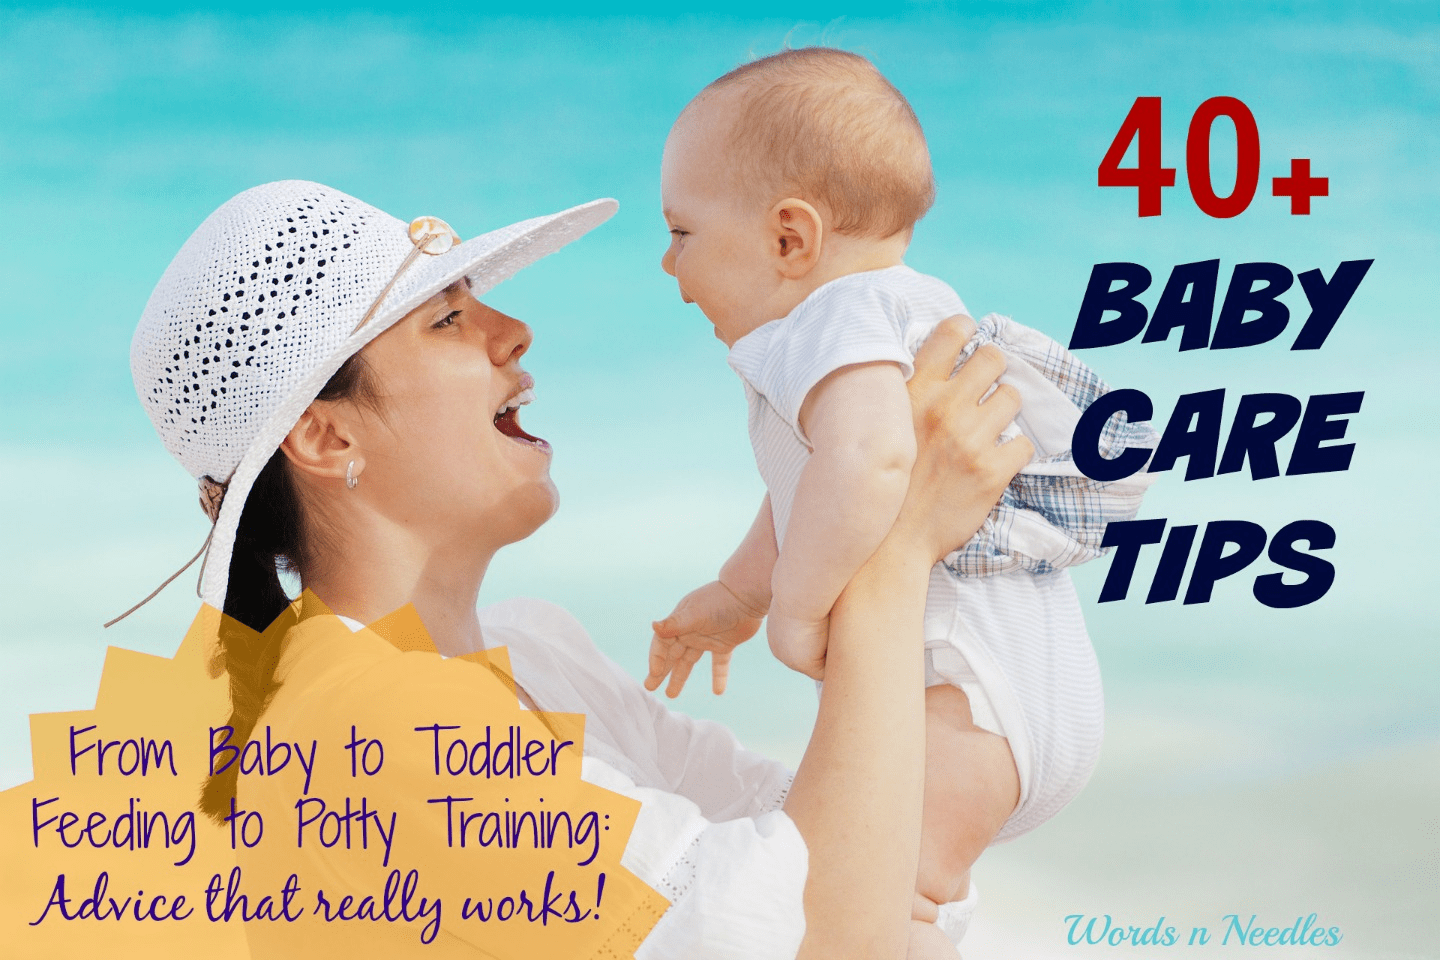 40+ Baby care tips to get through the first year. Advice for new moms